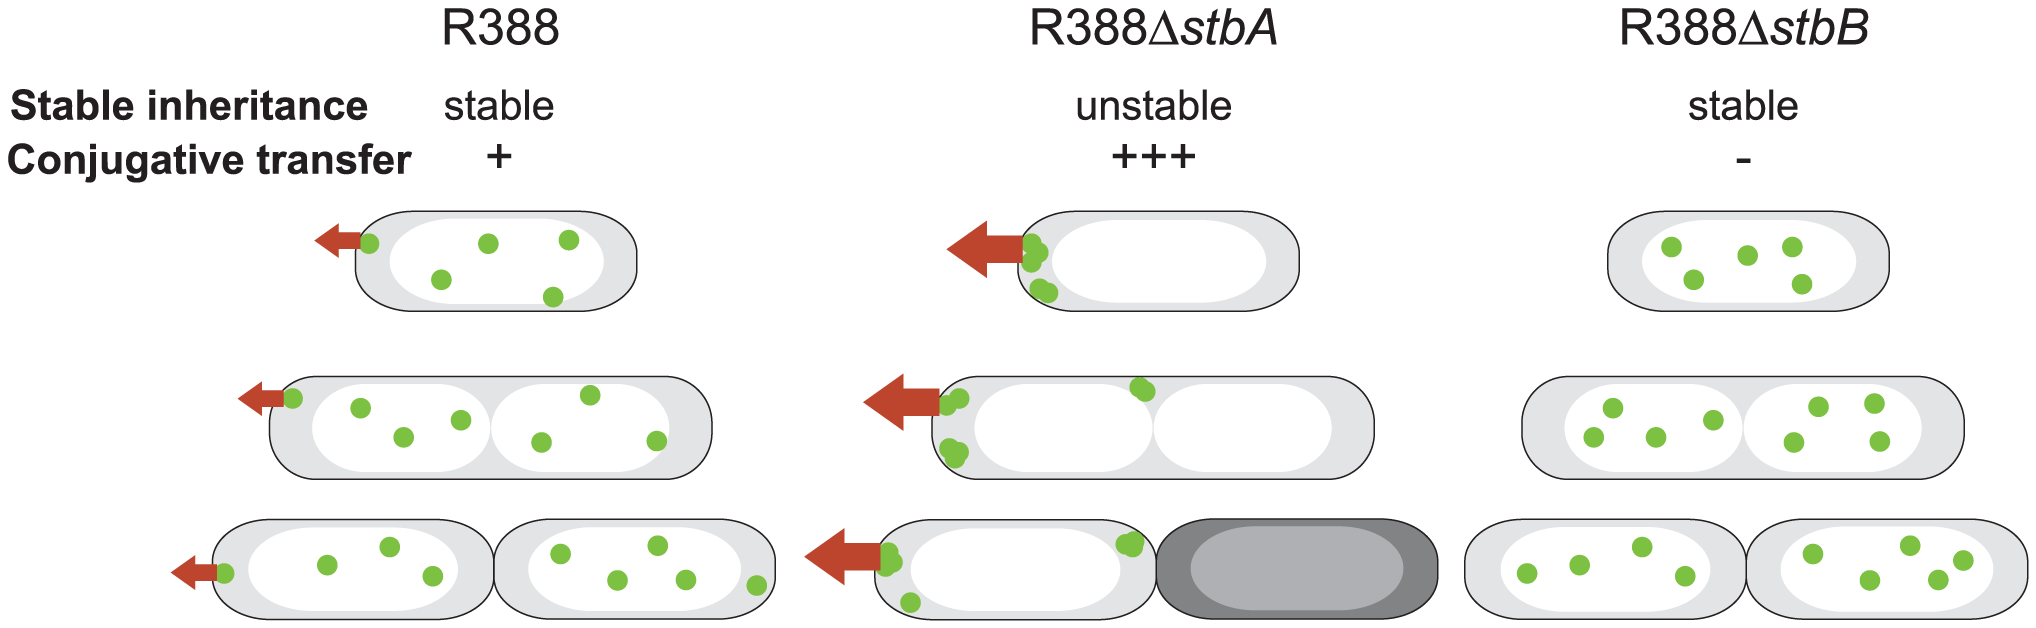 A schematic model to explain the behavior of <i>stb</i> mutants of plasmid R388.